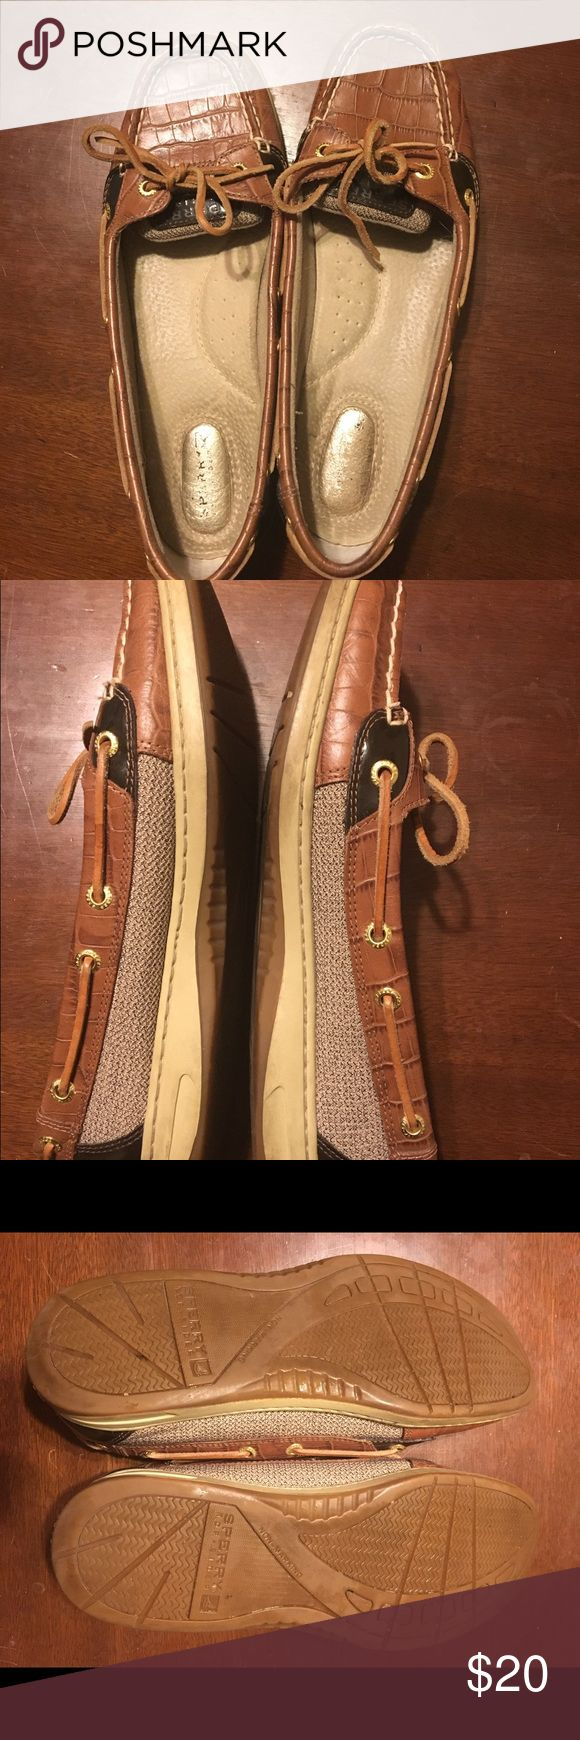 Women's Sperrys. Sperry Angelfish topsiders. Women's. Size 9.5. Brown/tan. Sperry Top-Sider Shoes Flats & Loafers